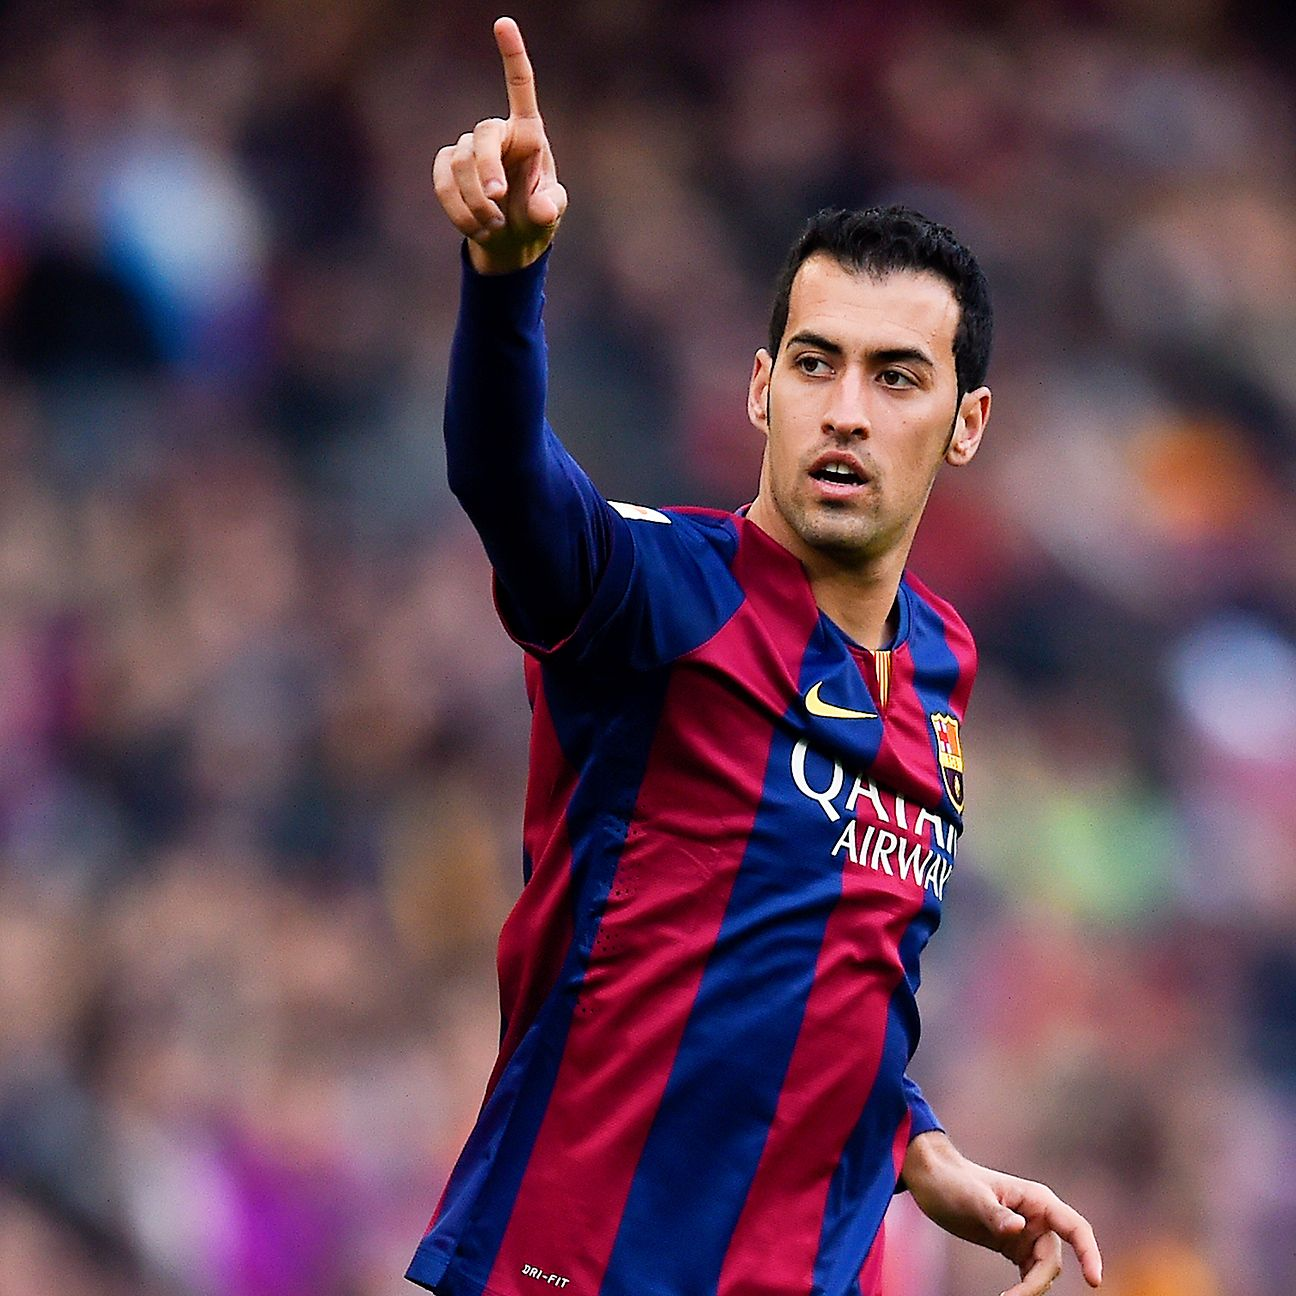 After debuting under Pep Guardiola, Sergio Busquets has emerged as a leader at Barcelona.